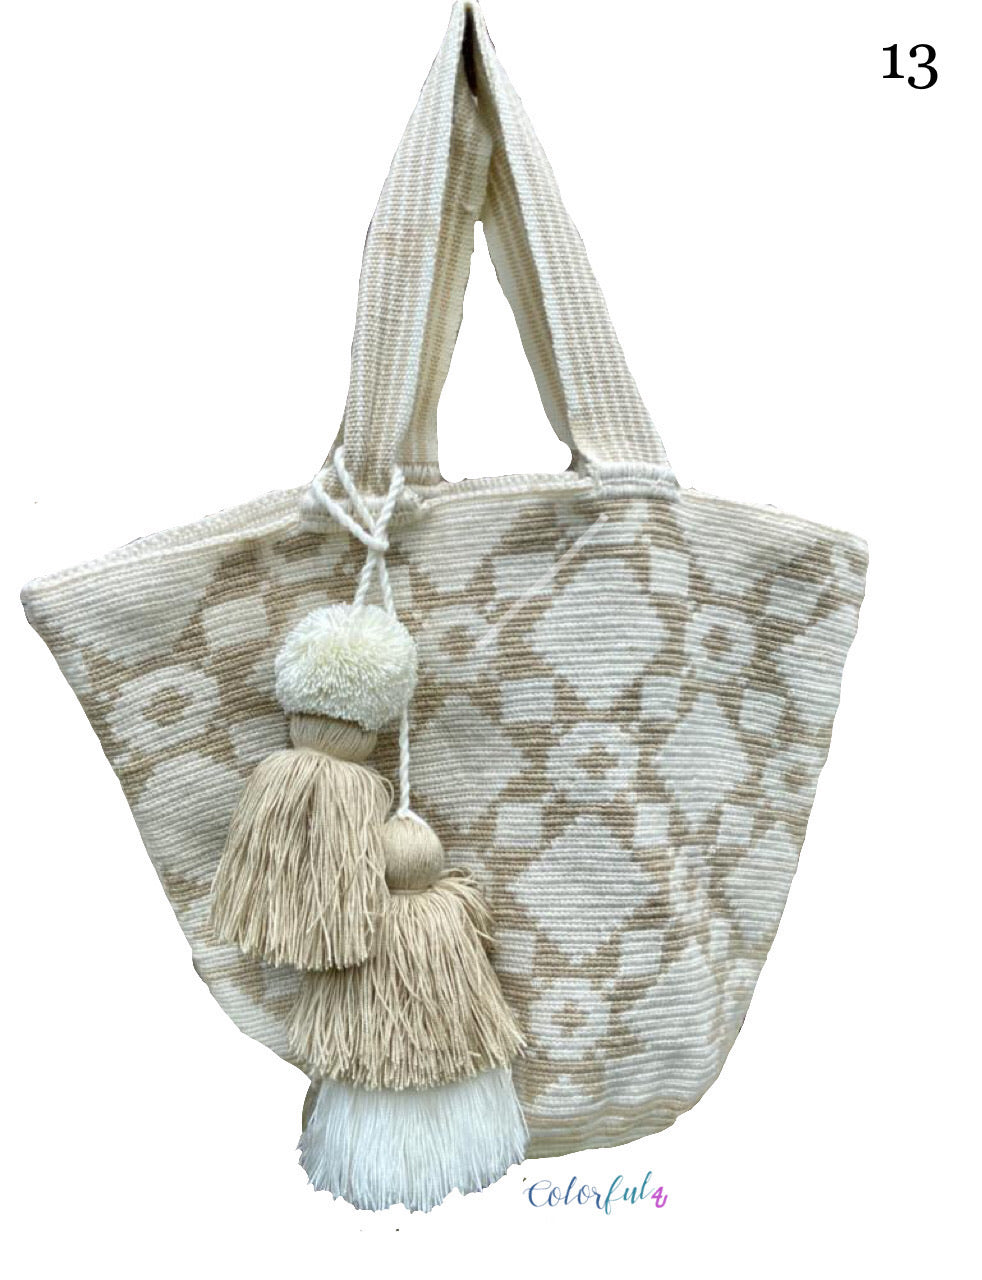 white Tote Bag | Beach Bags | Beach Totes | Summer Bags